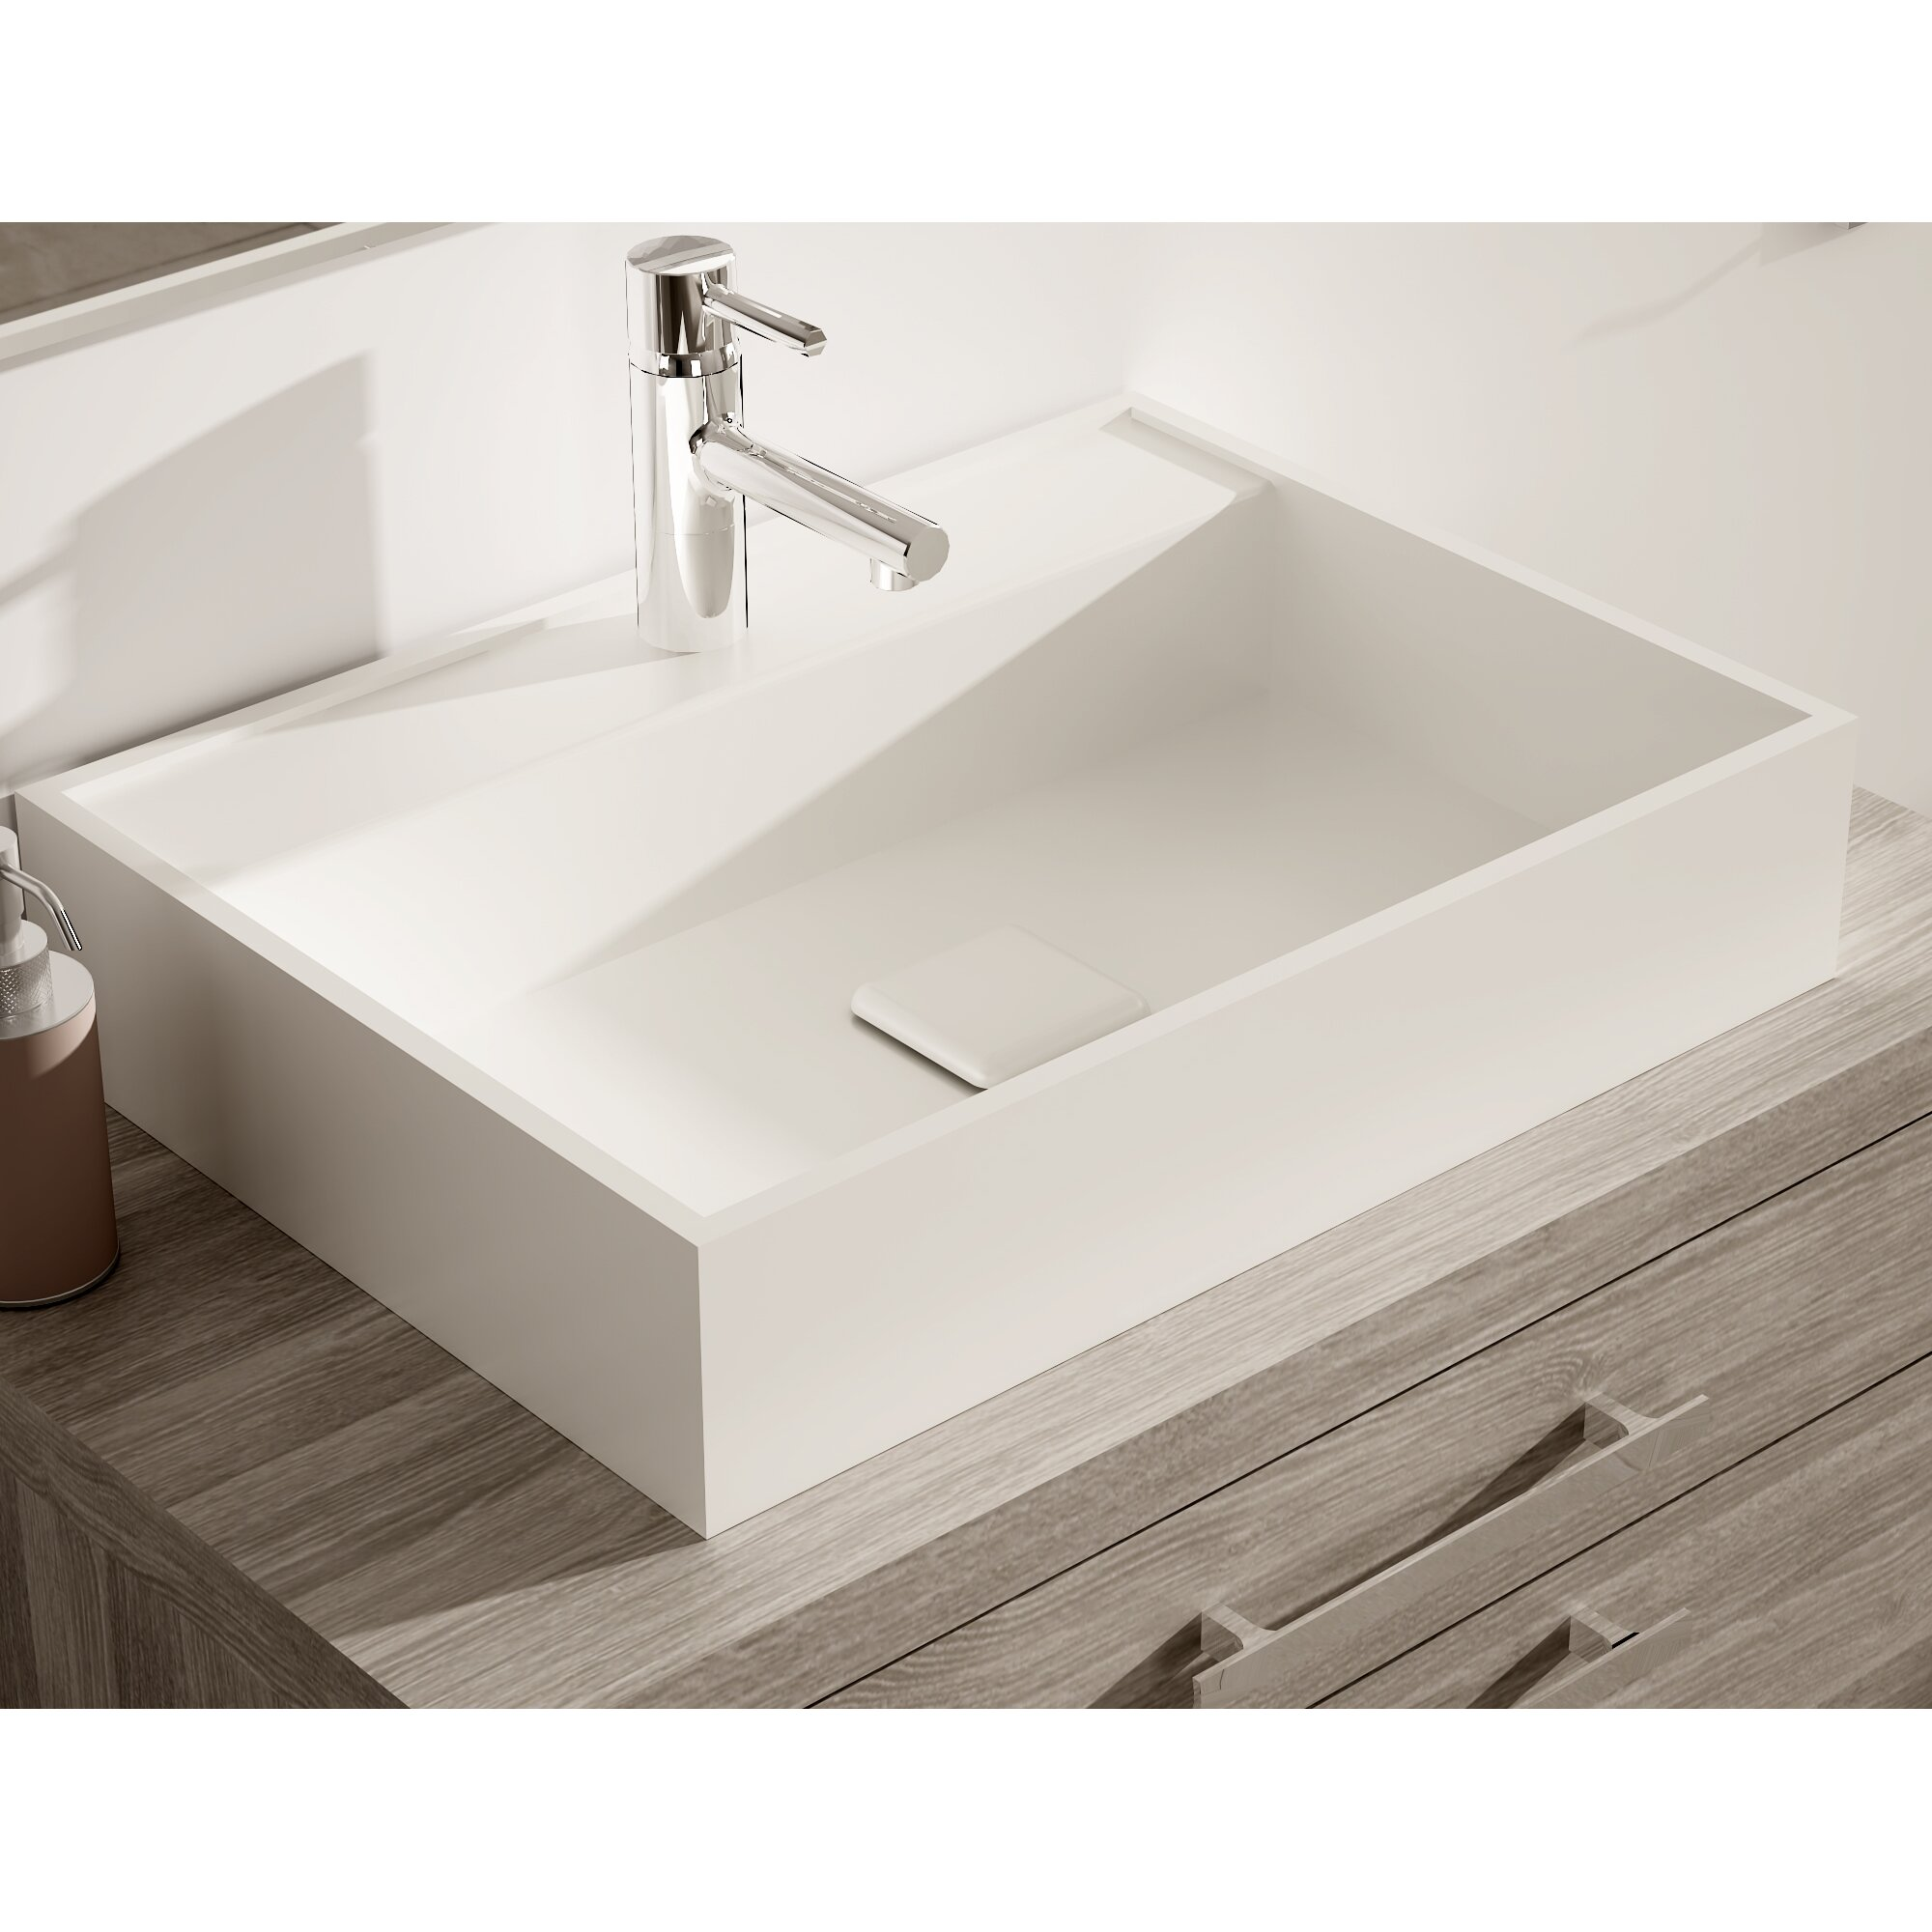 Solid Surface Stone Resin Wall Hung Sink Contemporary Bathroom Sinks